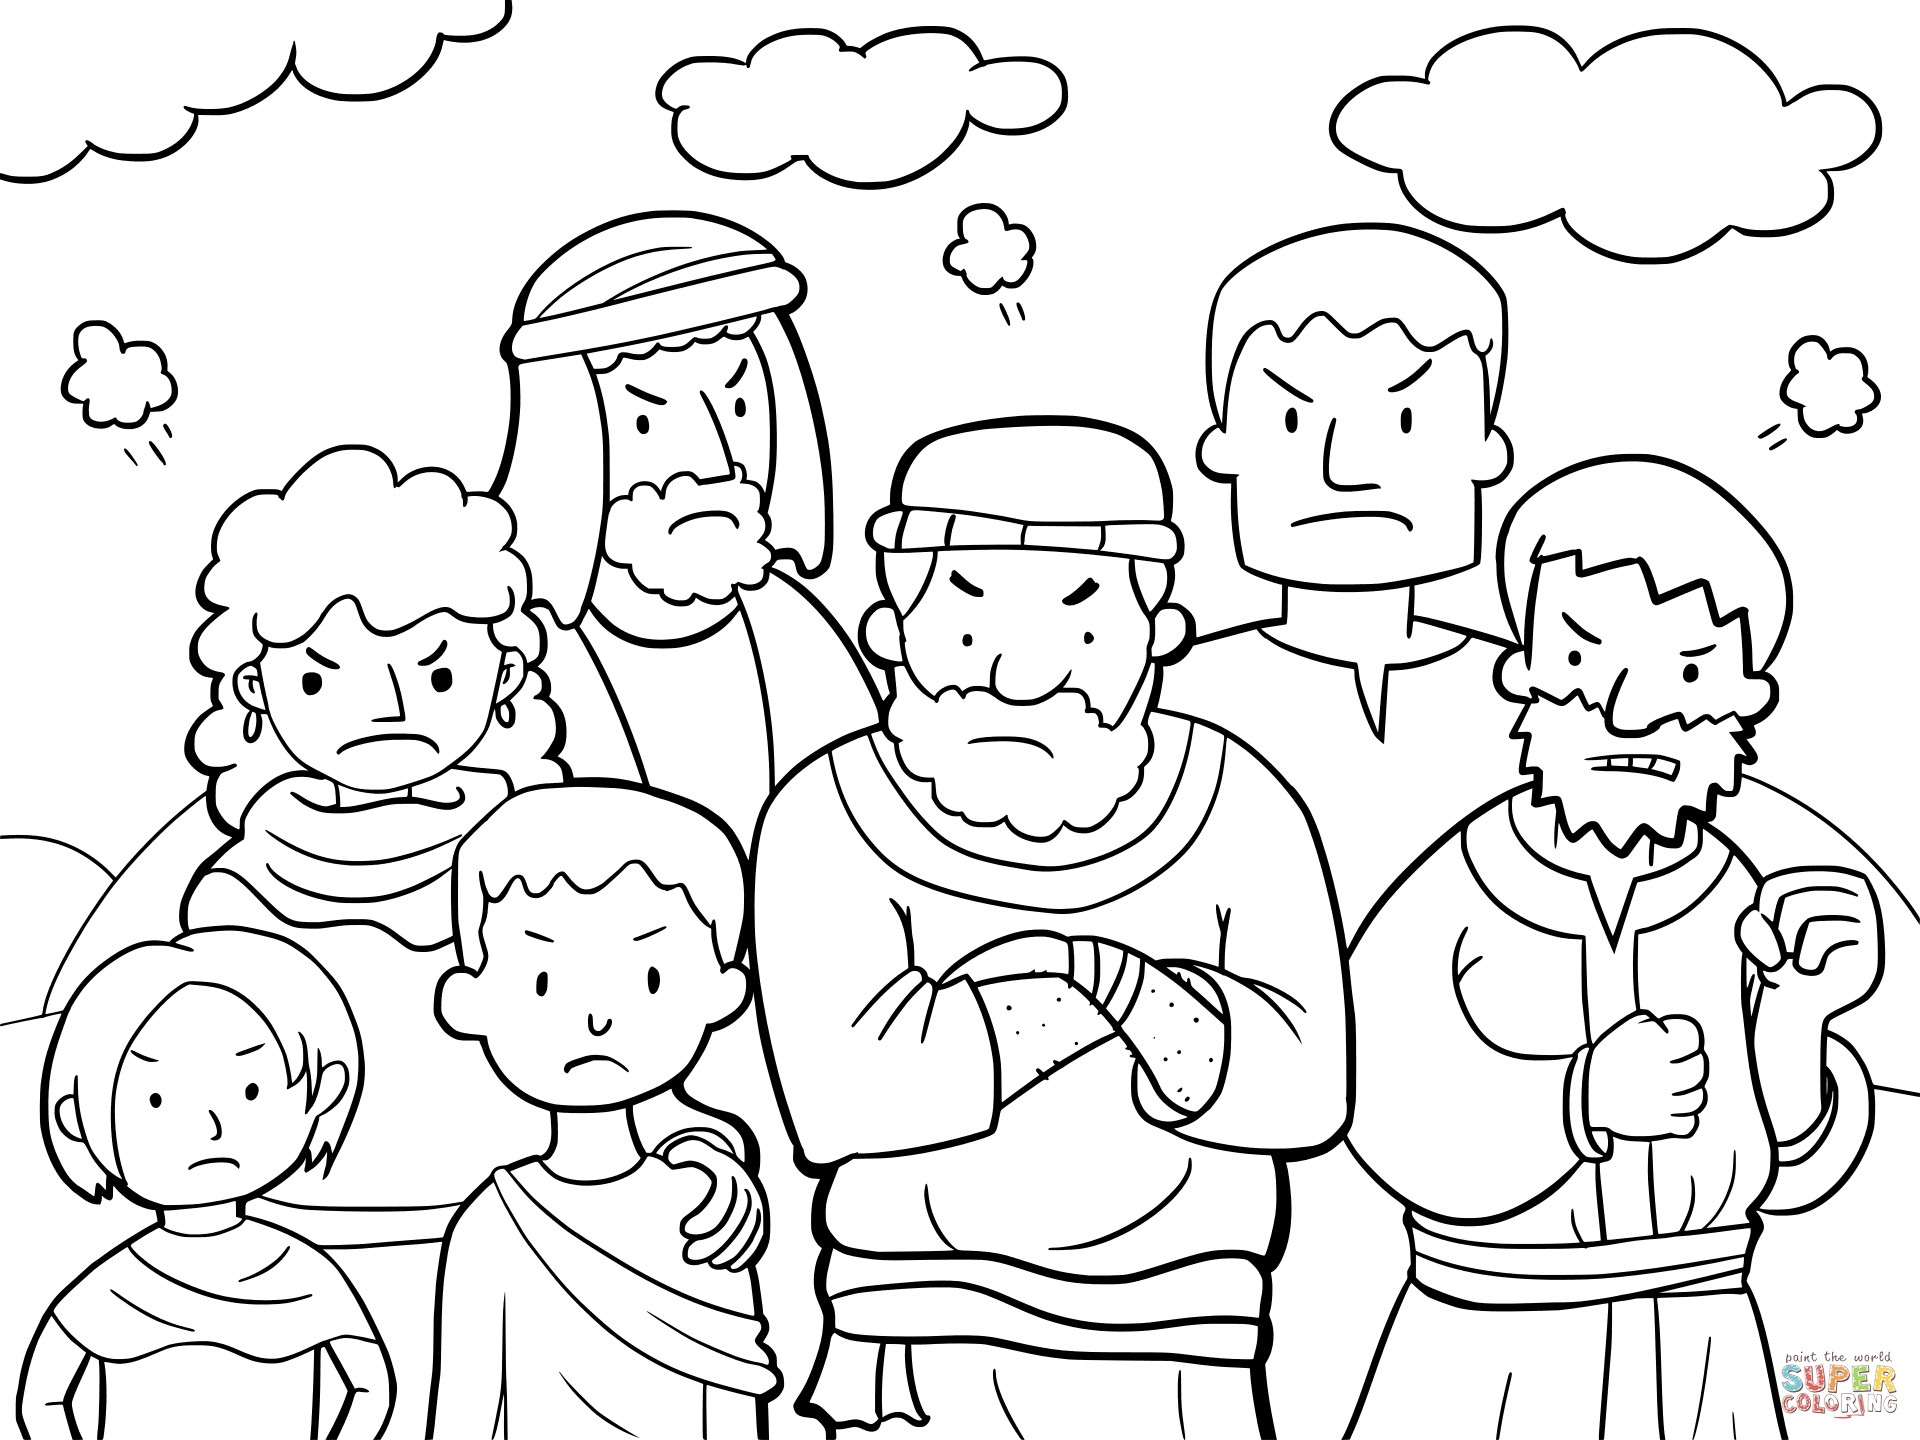 The 21 Best Ideas for Baby Alive Coloring Pages - Home ...